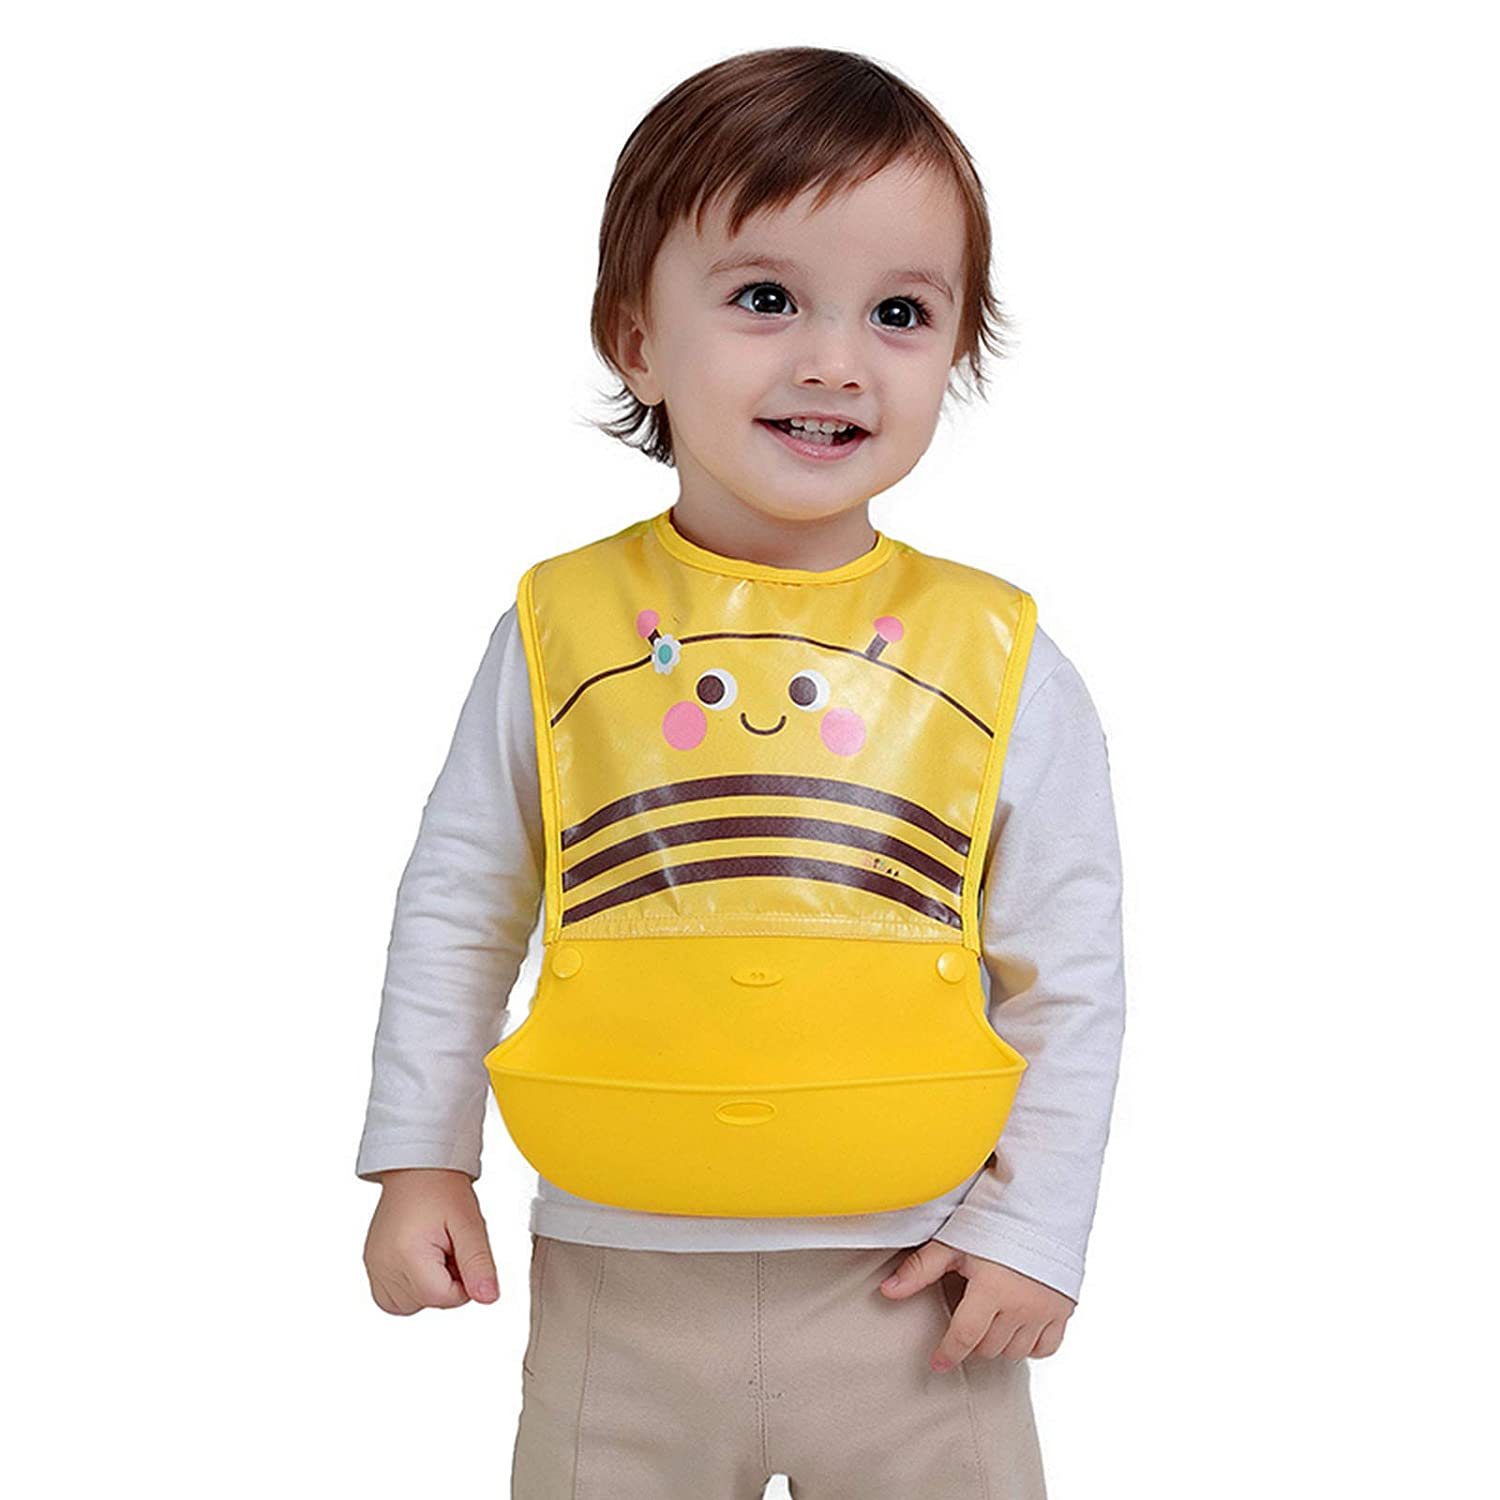 Silicone Baby Bib, Waterproof-Adjustable Correction Strap for Babies & Toddlers (6-72 Months), Easy Clean, BPA-Free, Lightweight Travel Bibs with Large Food Catcher Pocket for Girls and Boys (Yellow)